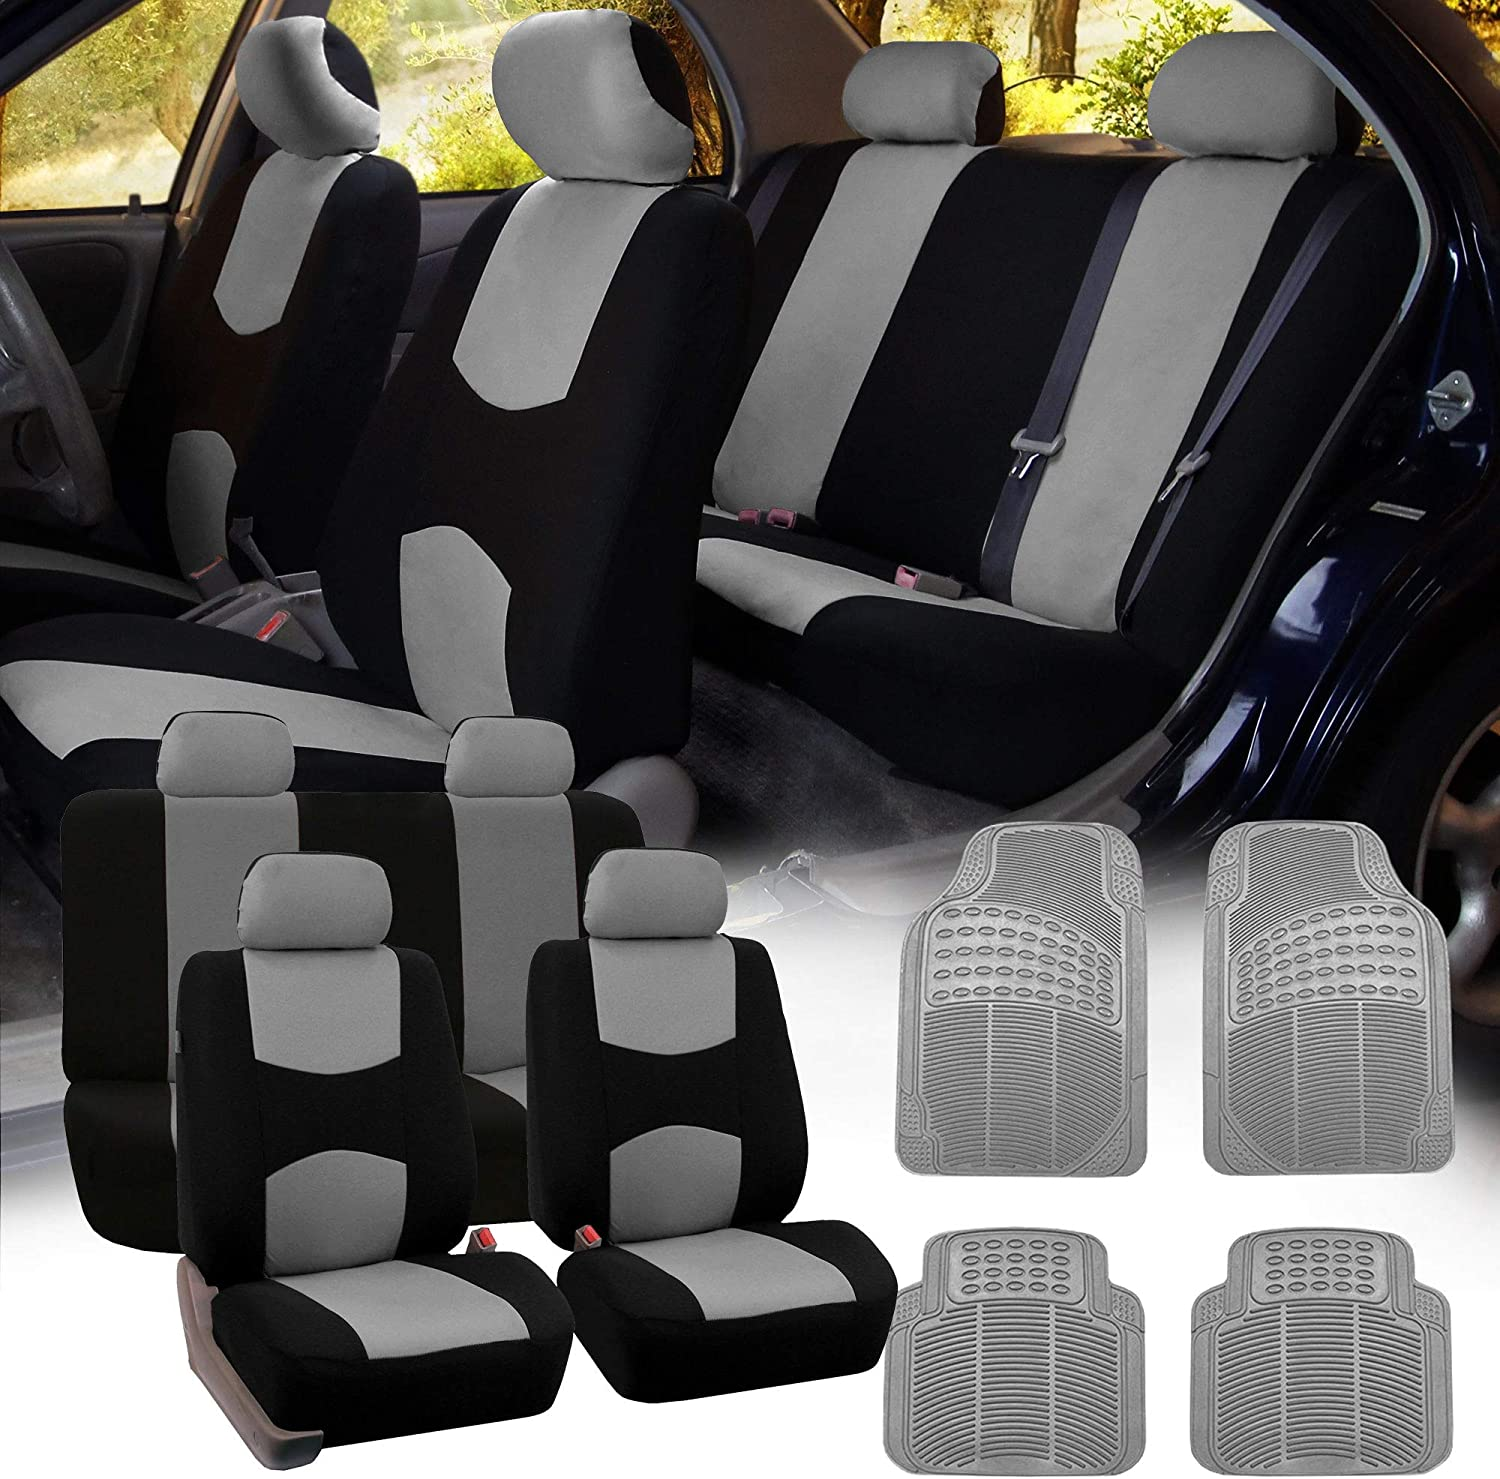 FH Group FB051115 + R11305 Combo Set: Multi-Functional Flat Cloth Seat Covers – Full Set